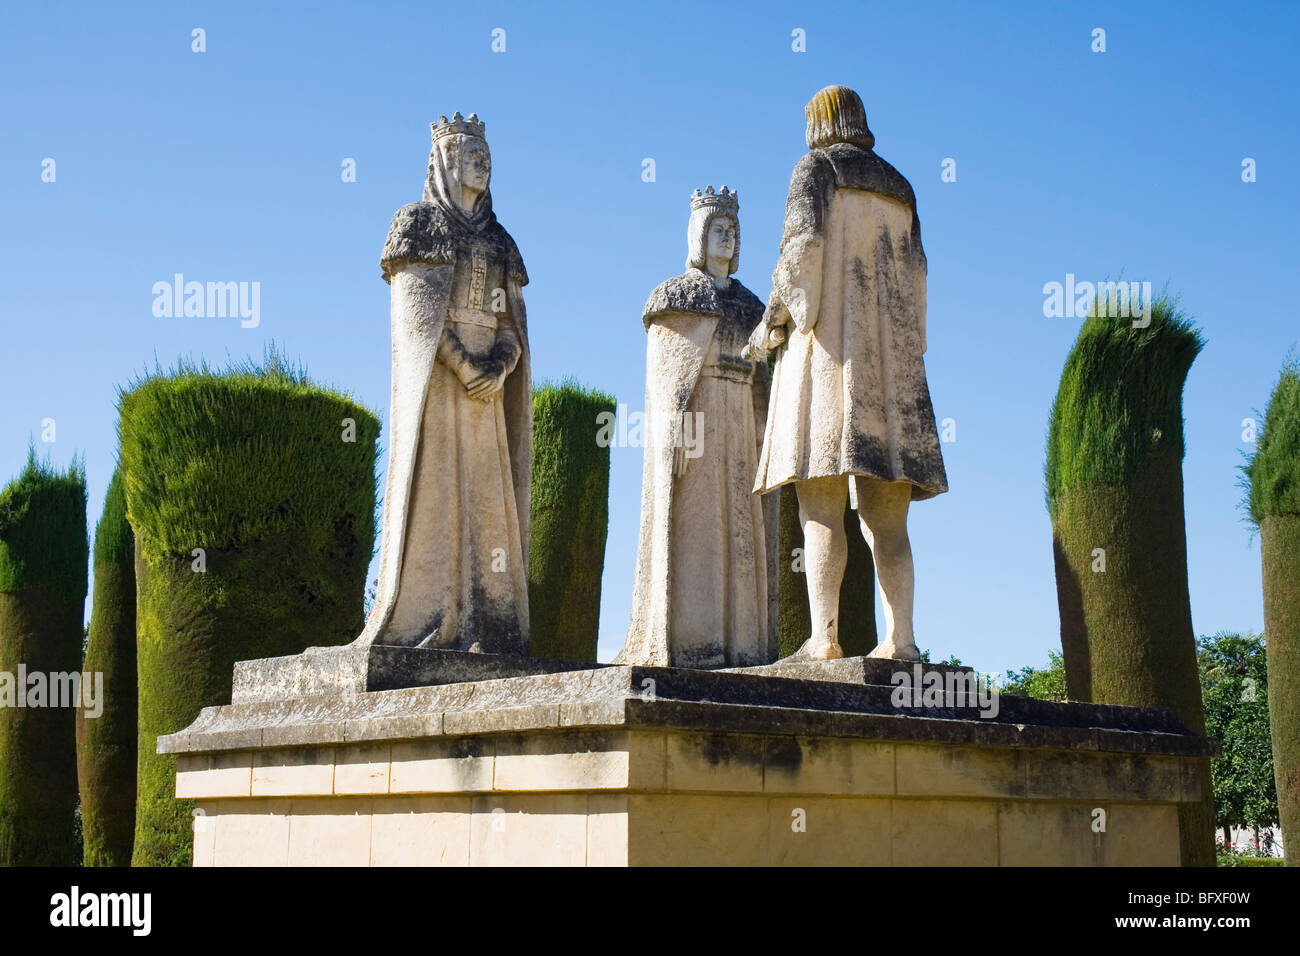 Statues of Christopher Columbus, King Ferdinand II of Aragon and Queen Isabella I of Castile in the gardens of the Alcazar